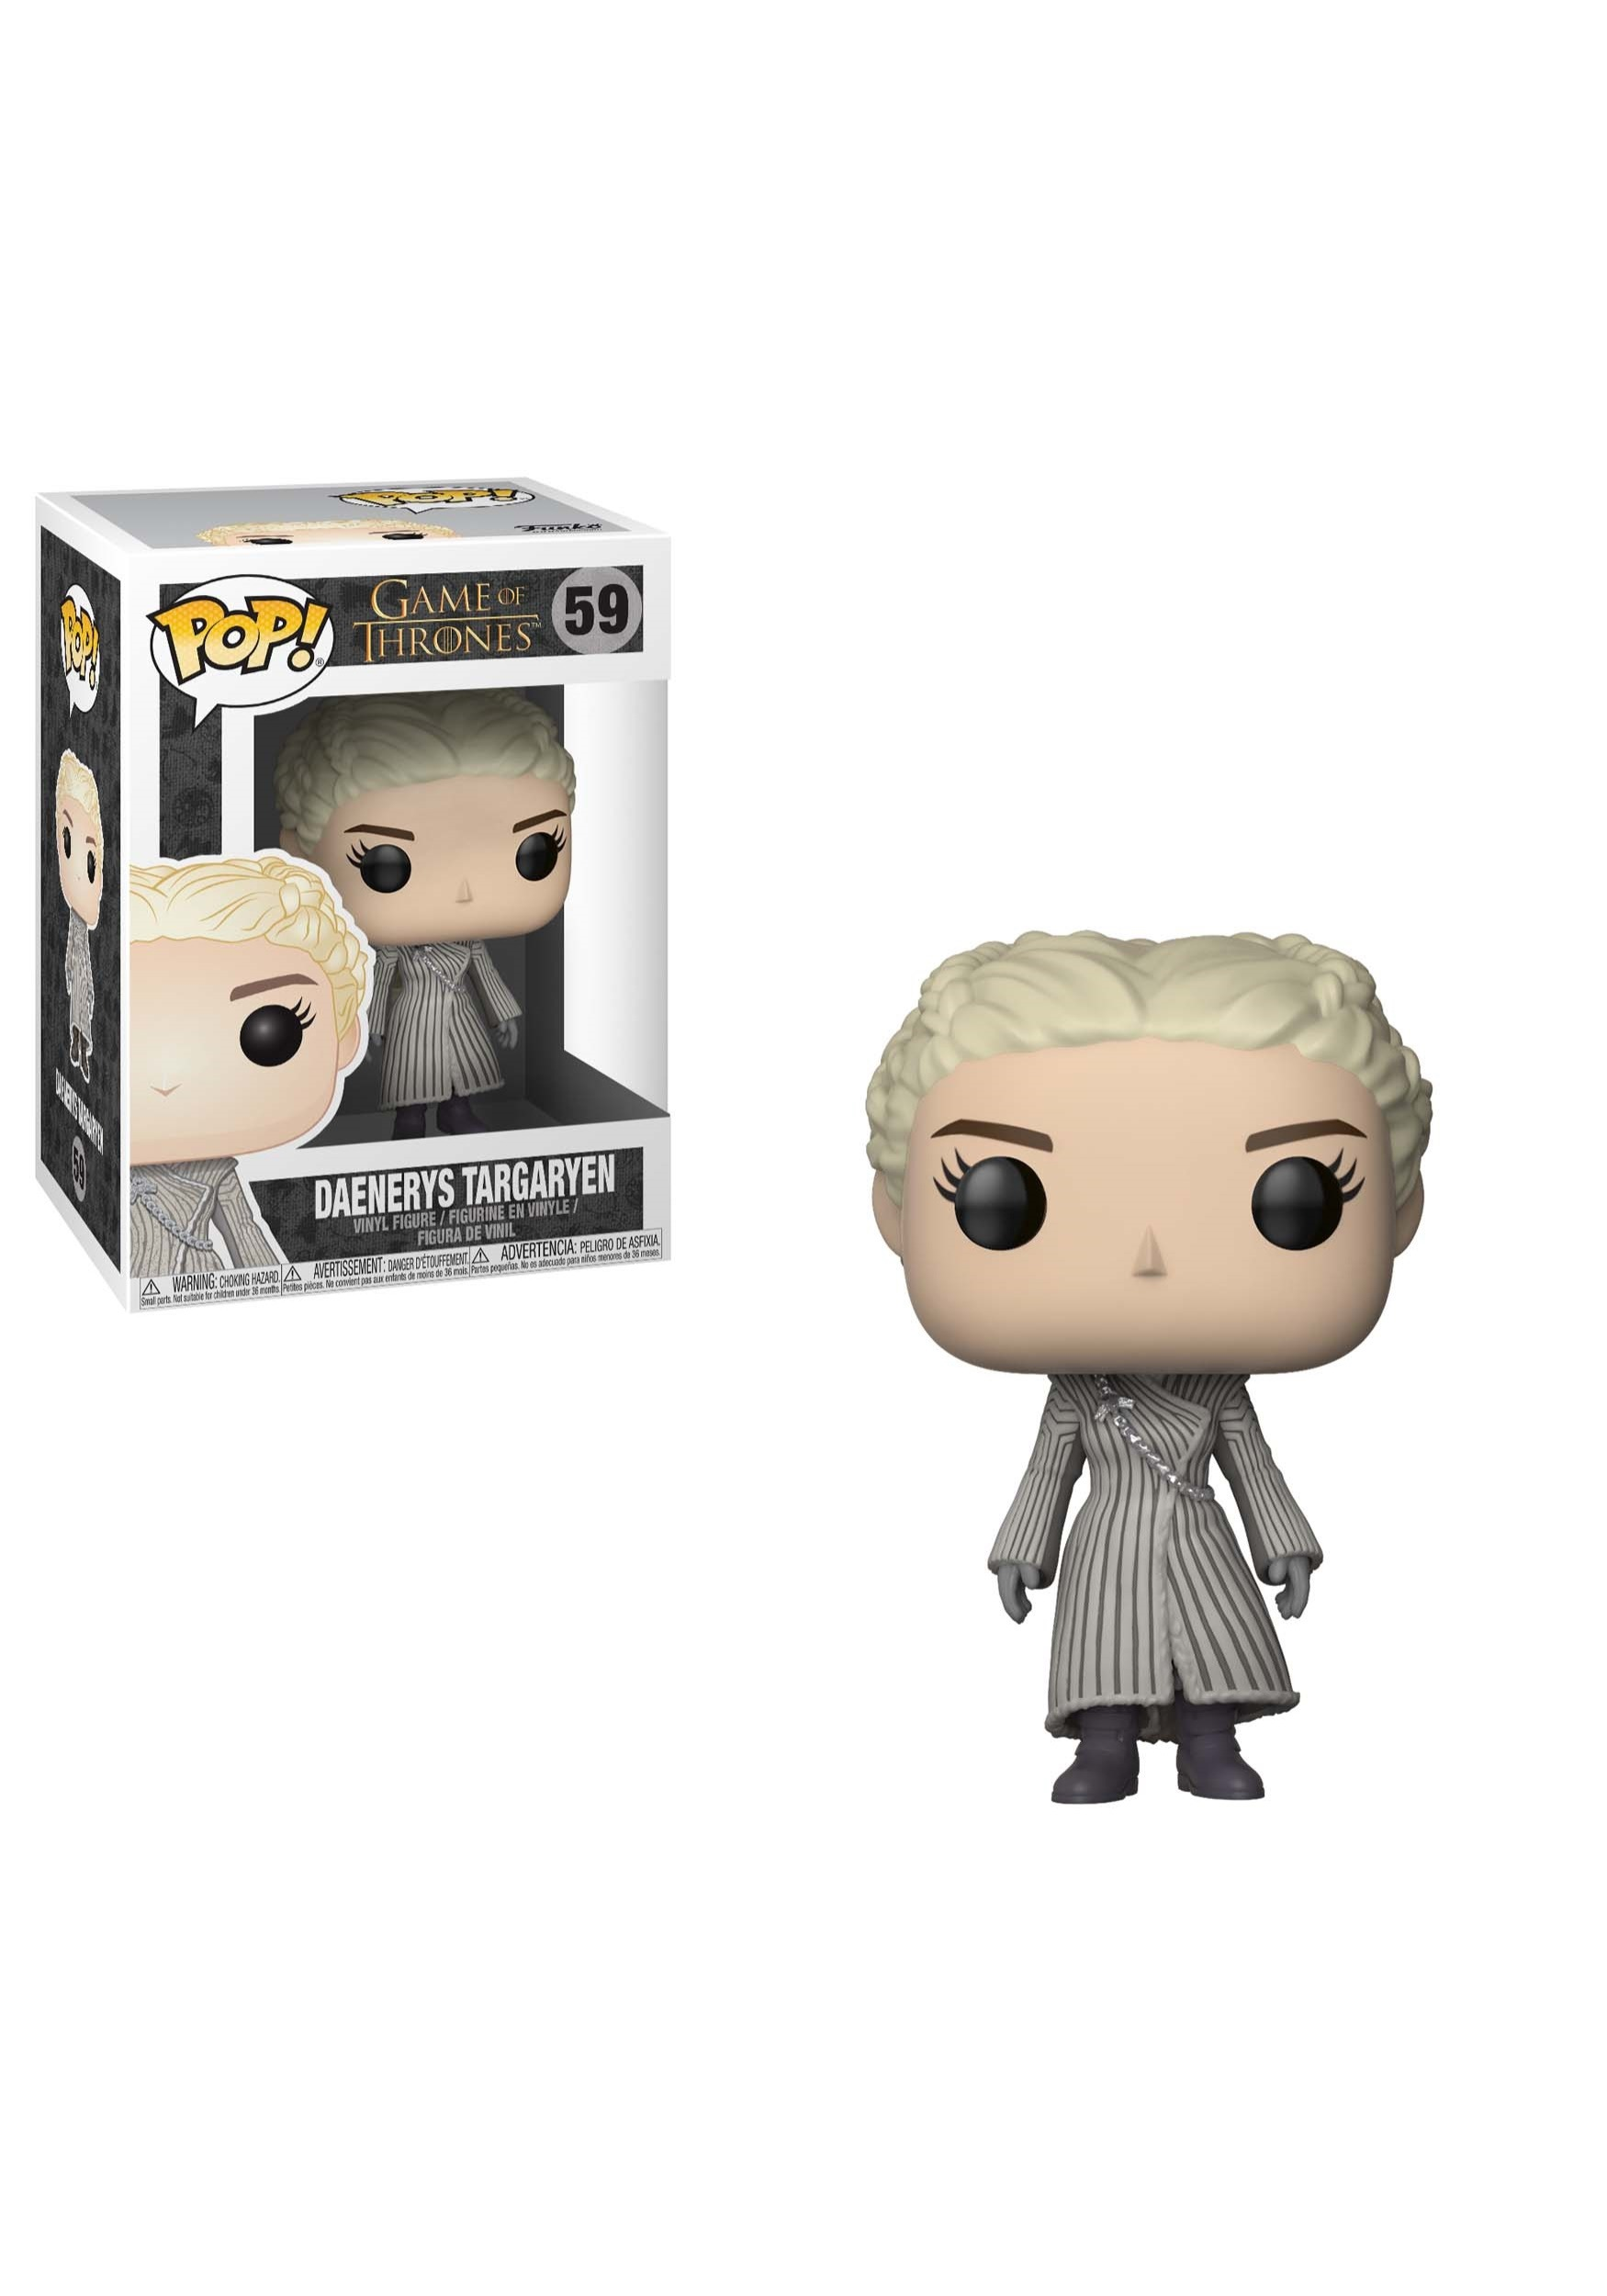 POP! TV: Game of Thrones Daenerys Targaryen Vinyl Figure FN28888